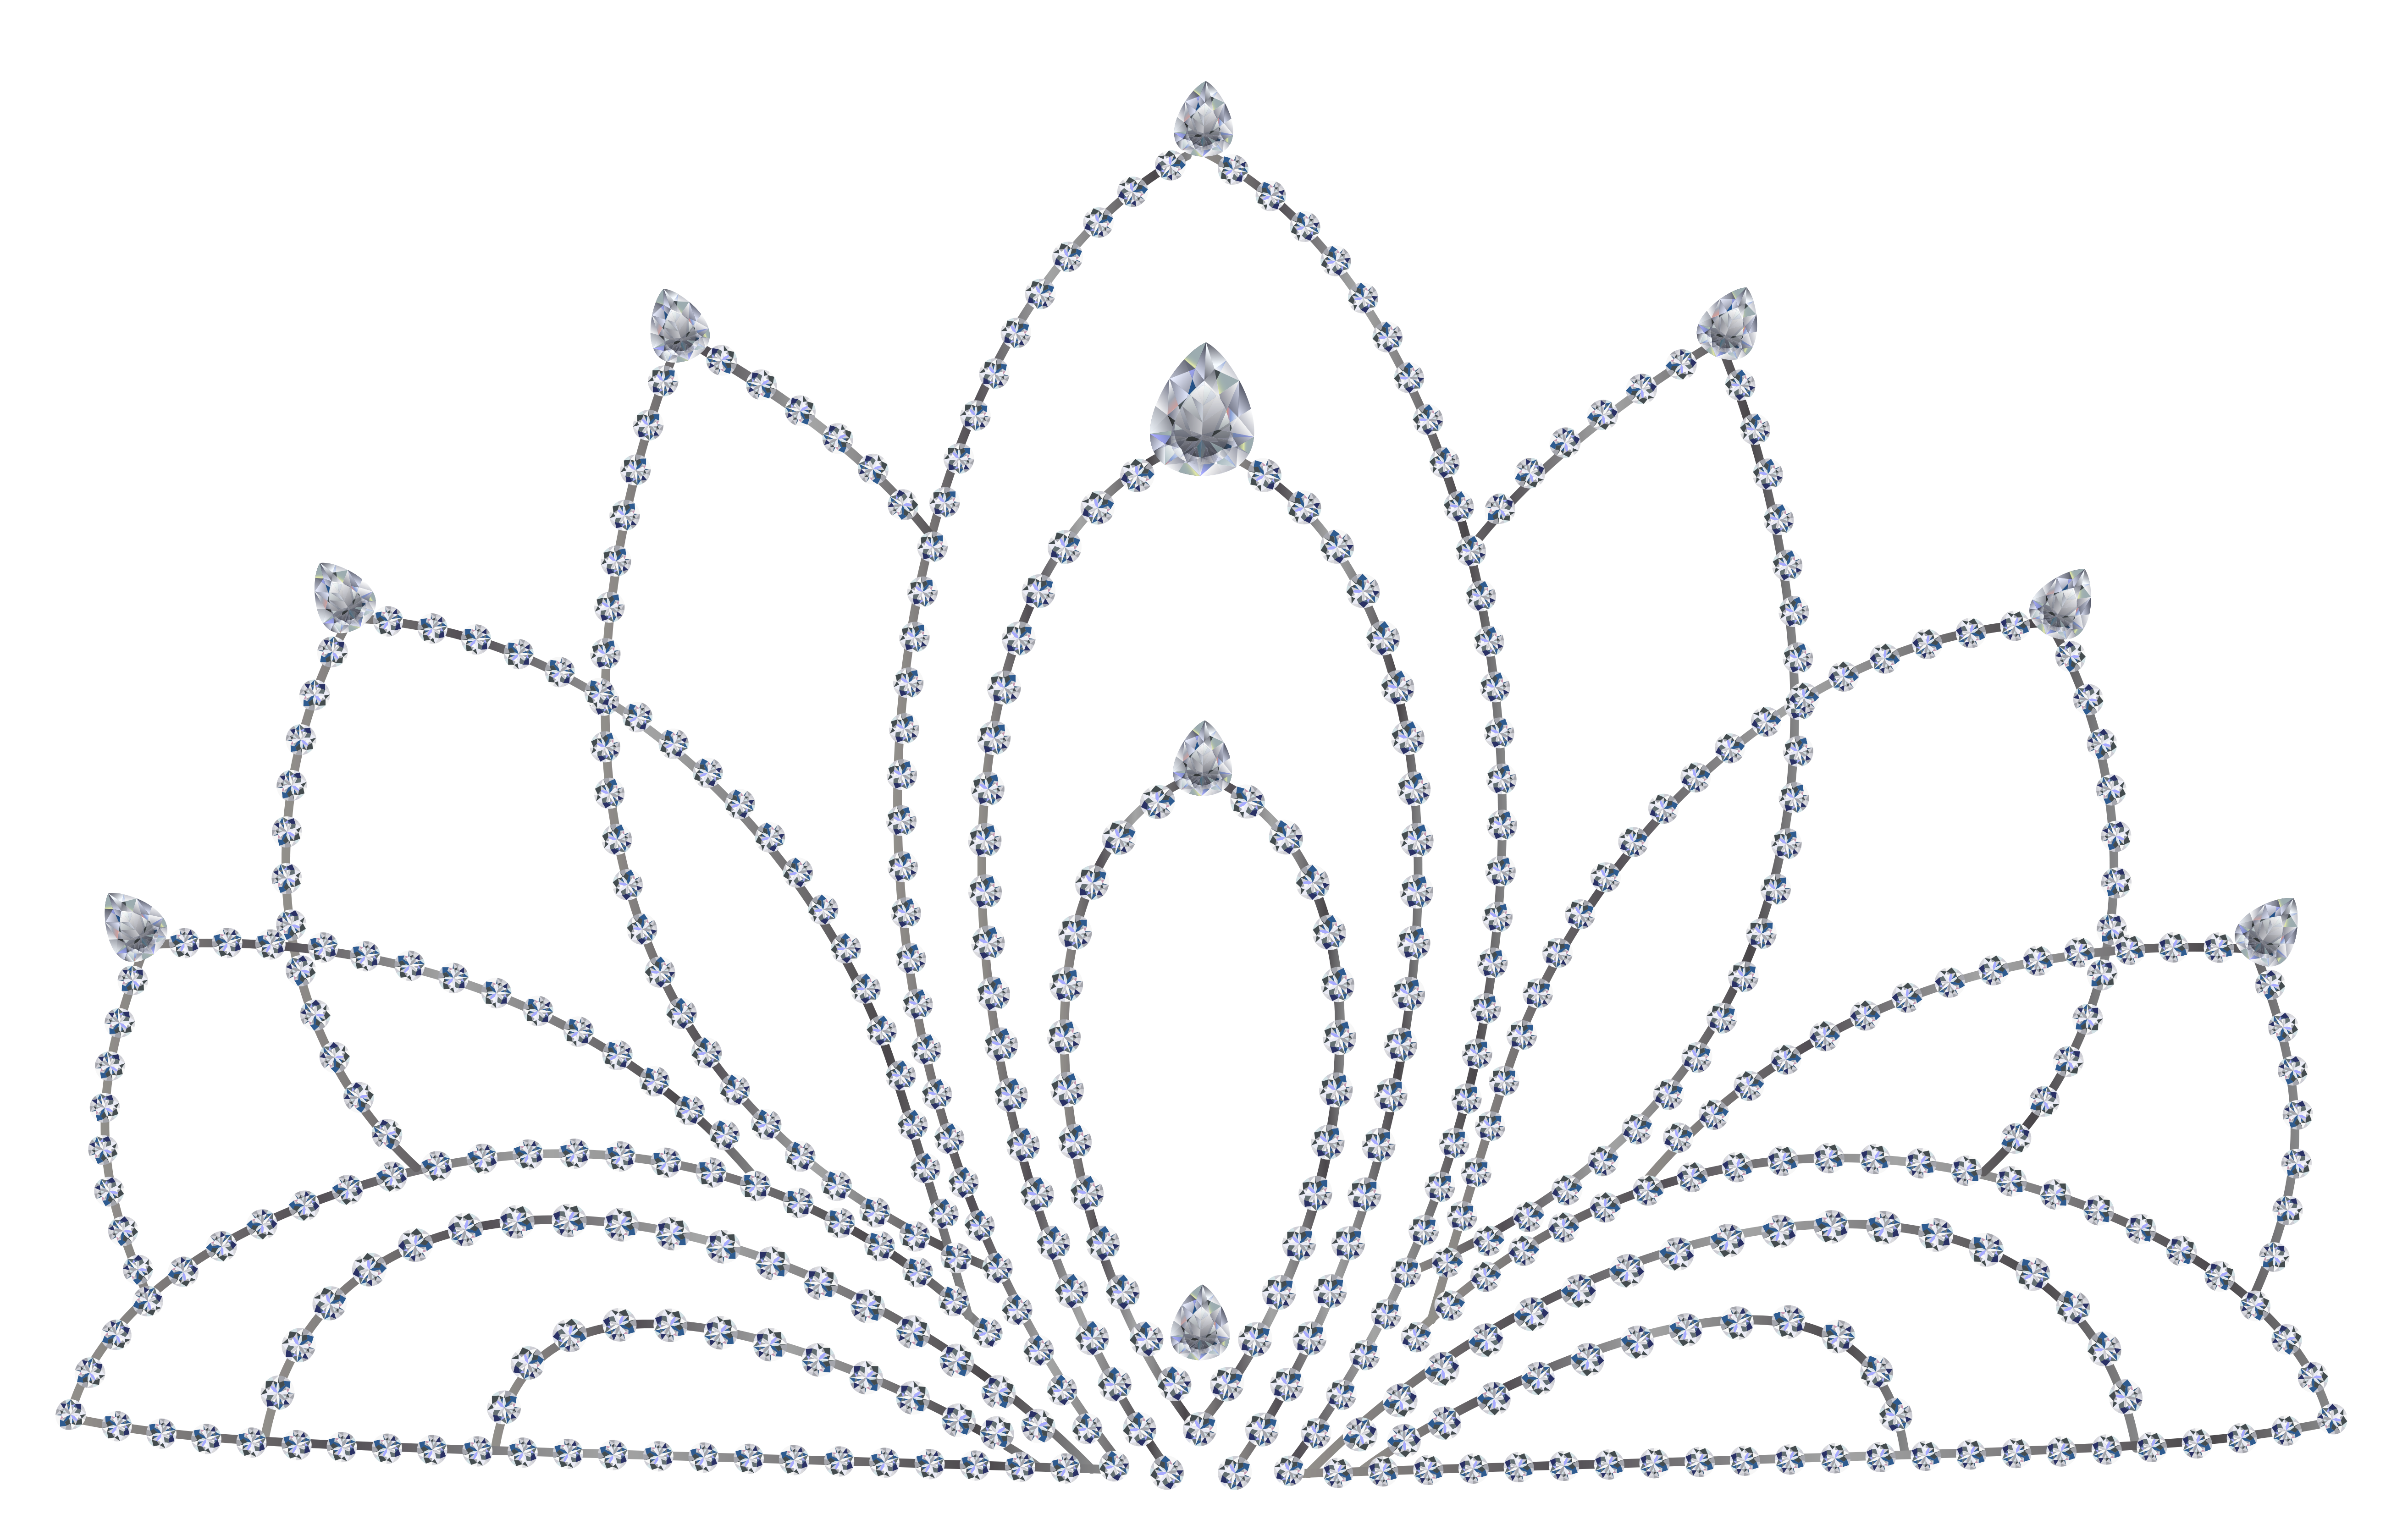 image library library Black and white crown clipart. Diamond clear background frames